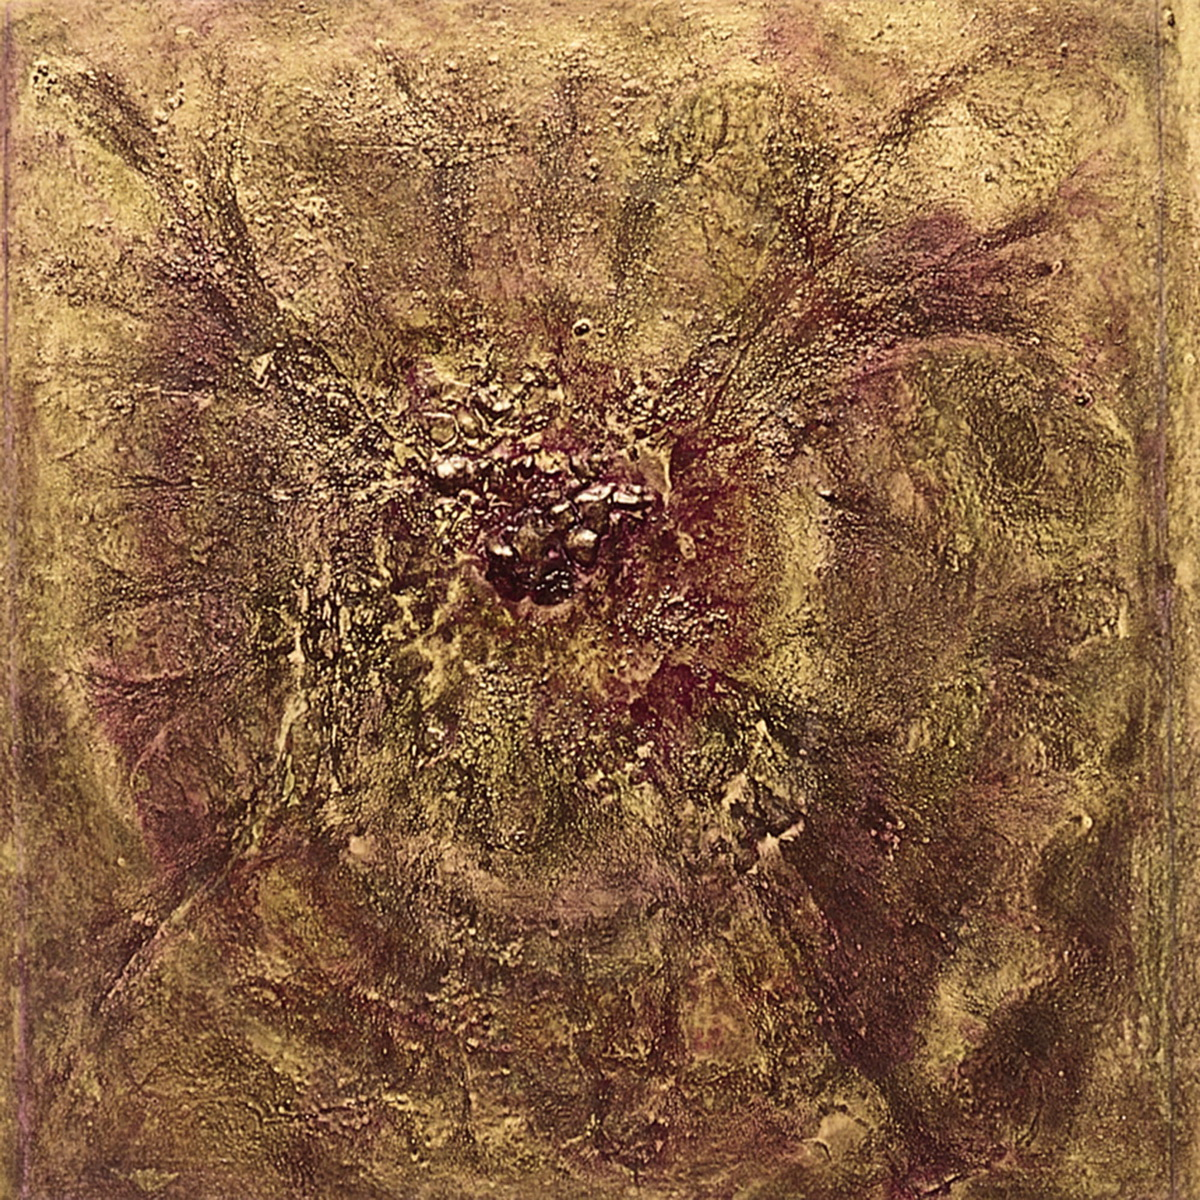 Creation-2-1998-acrylic-on-canvas-100x100-cm-40x40-inches